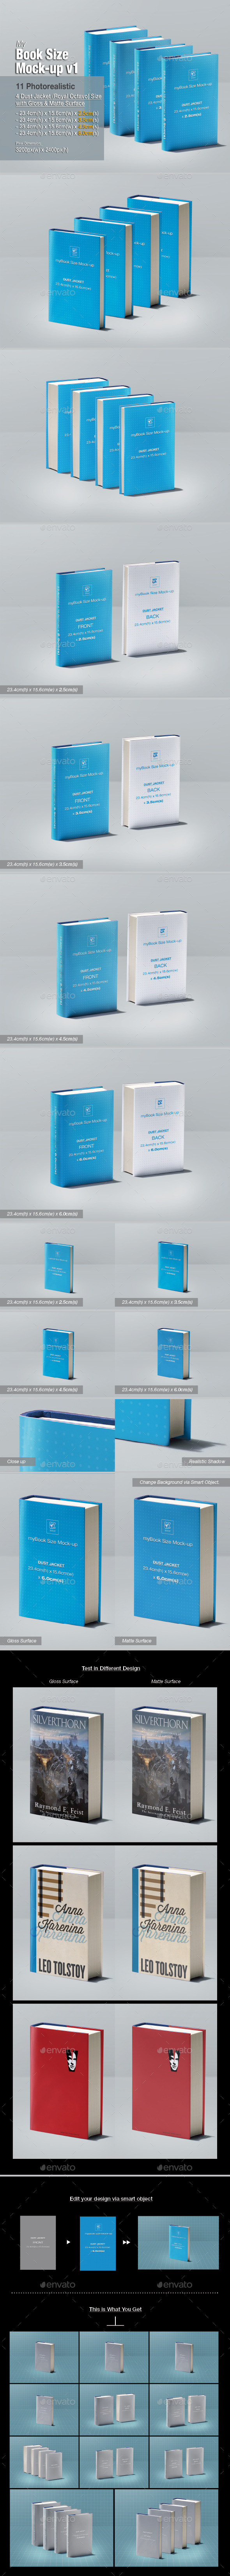 GraphicRiver myBook Size Mock-up v1 11310170